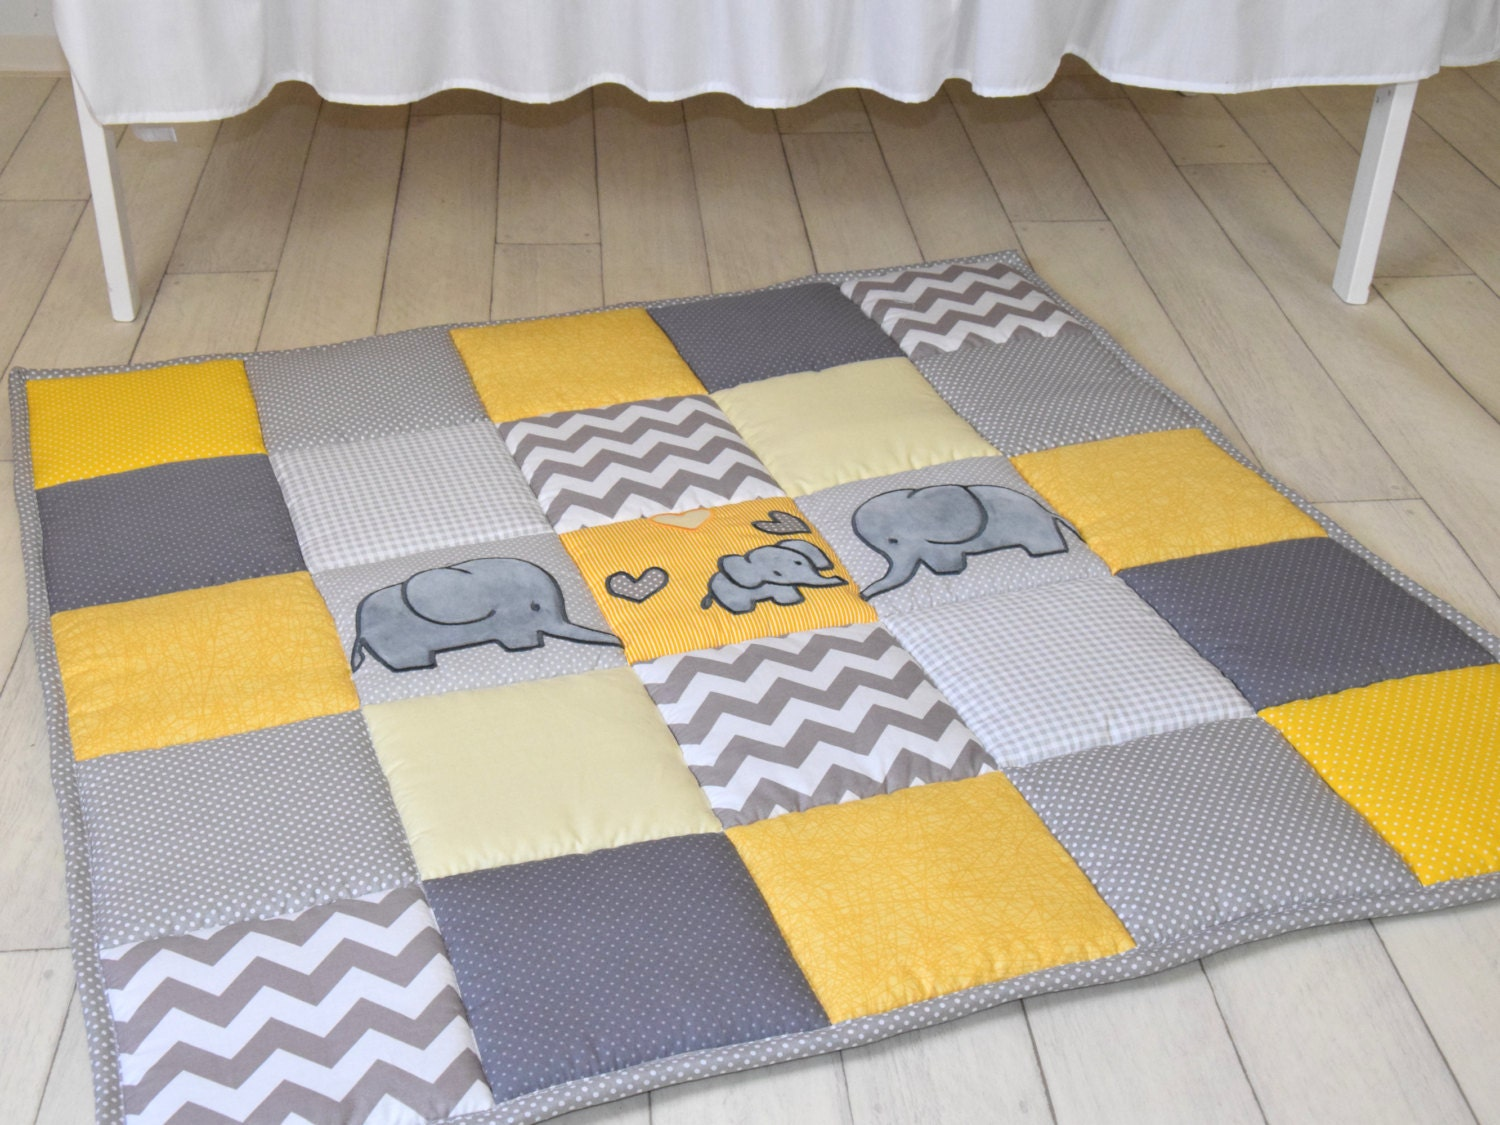 large child play in from item children room rug floor bebe for crawling toys playmat mats mat kids infant carpet baby blanket